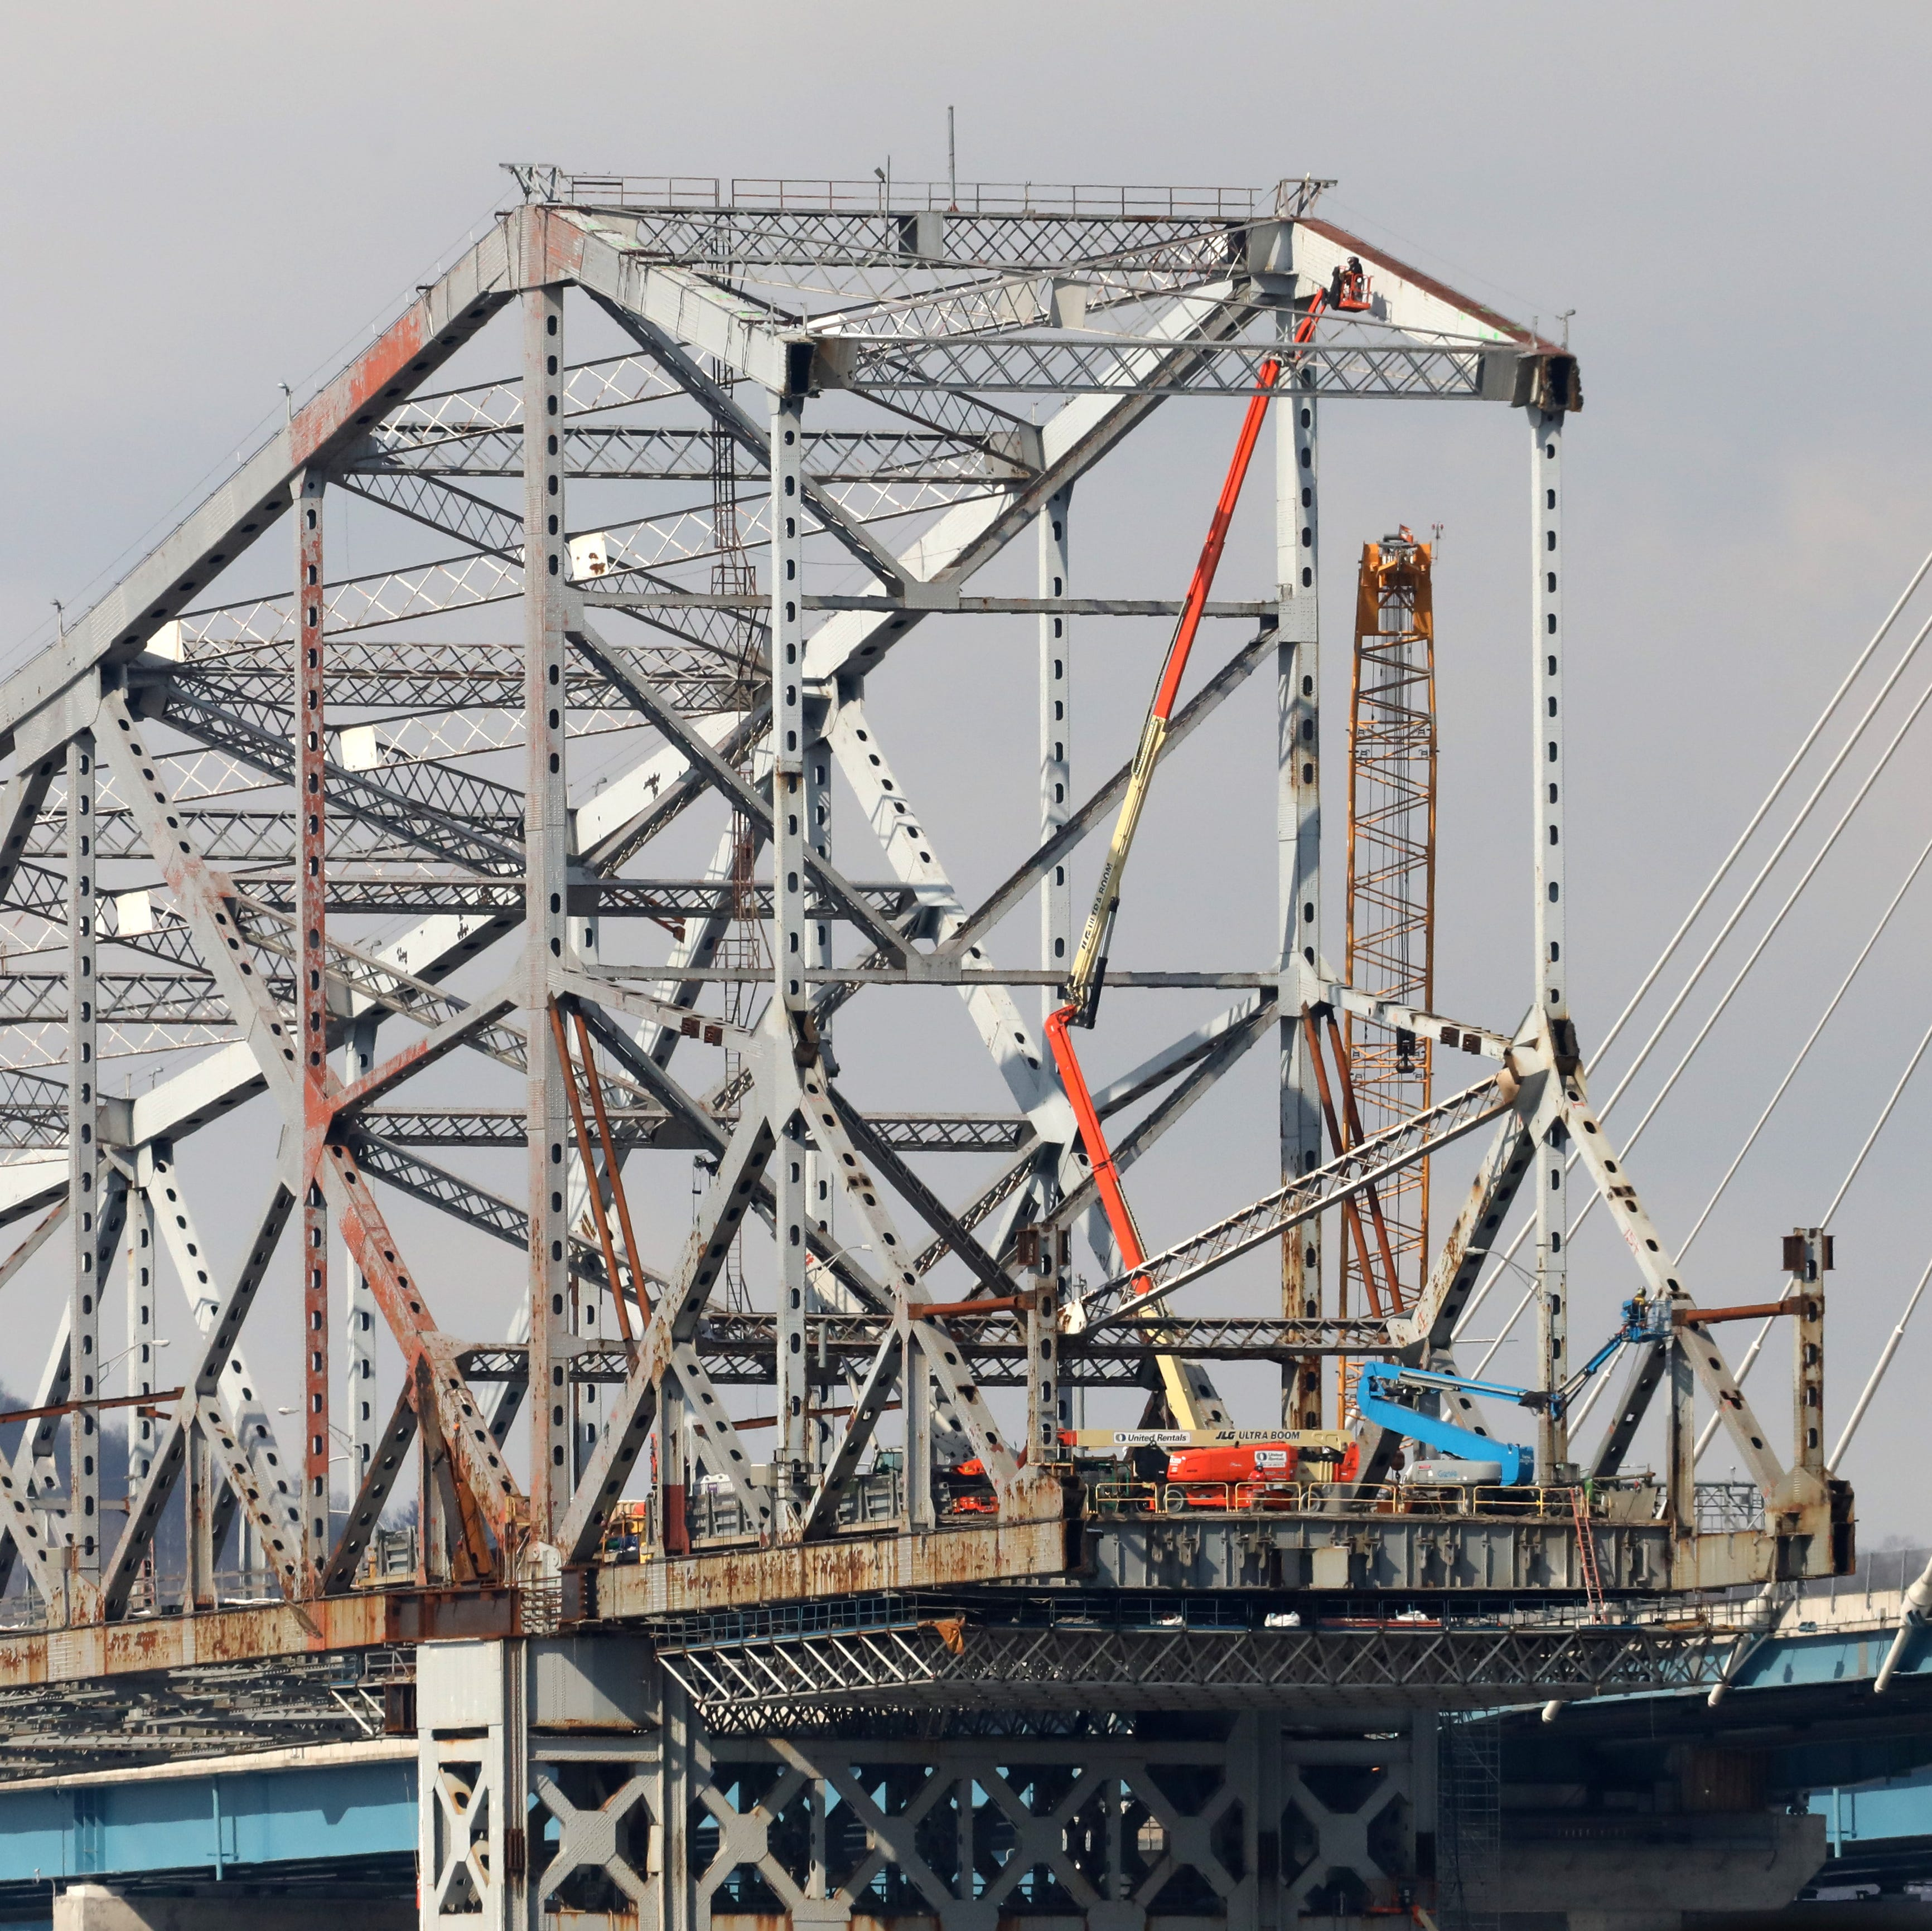 Last visible remnants of Tappan Zee Bridge are coming down now